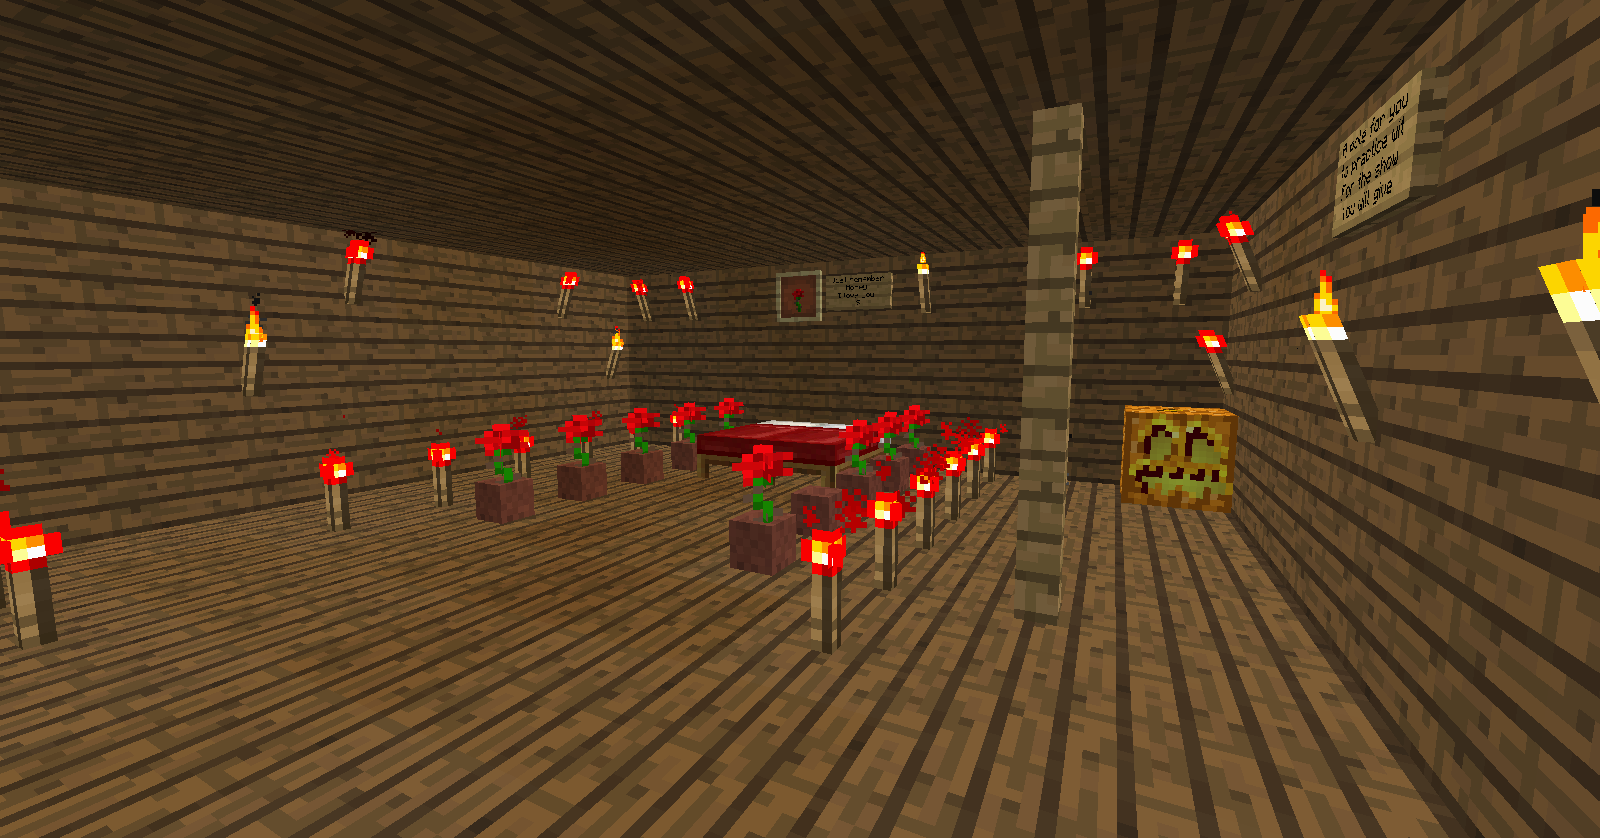 Crazy World [Game] Romantic room in Minecraft PRIVATE server 1600x838